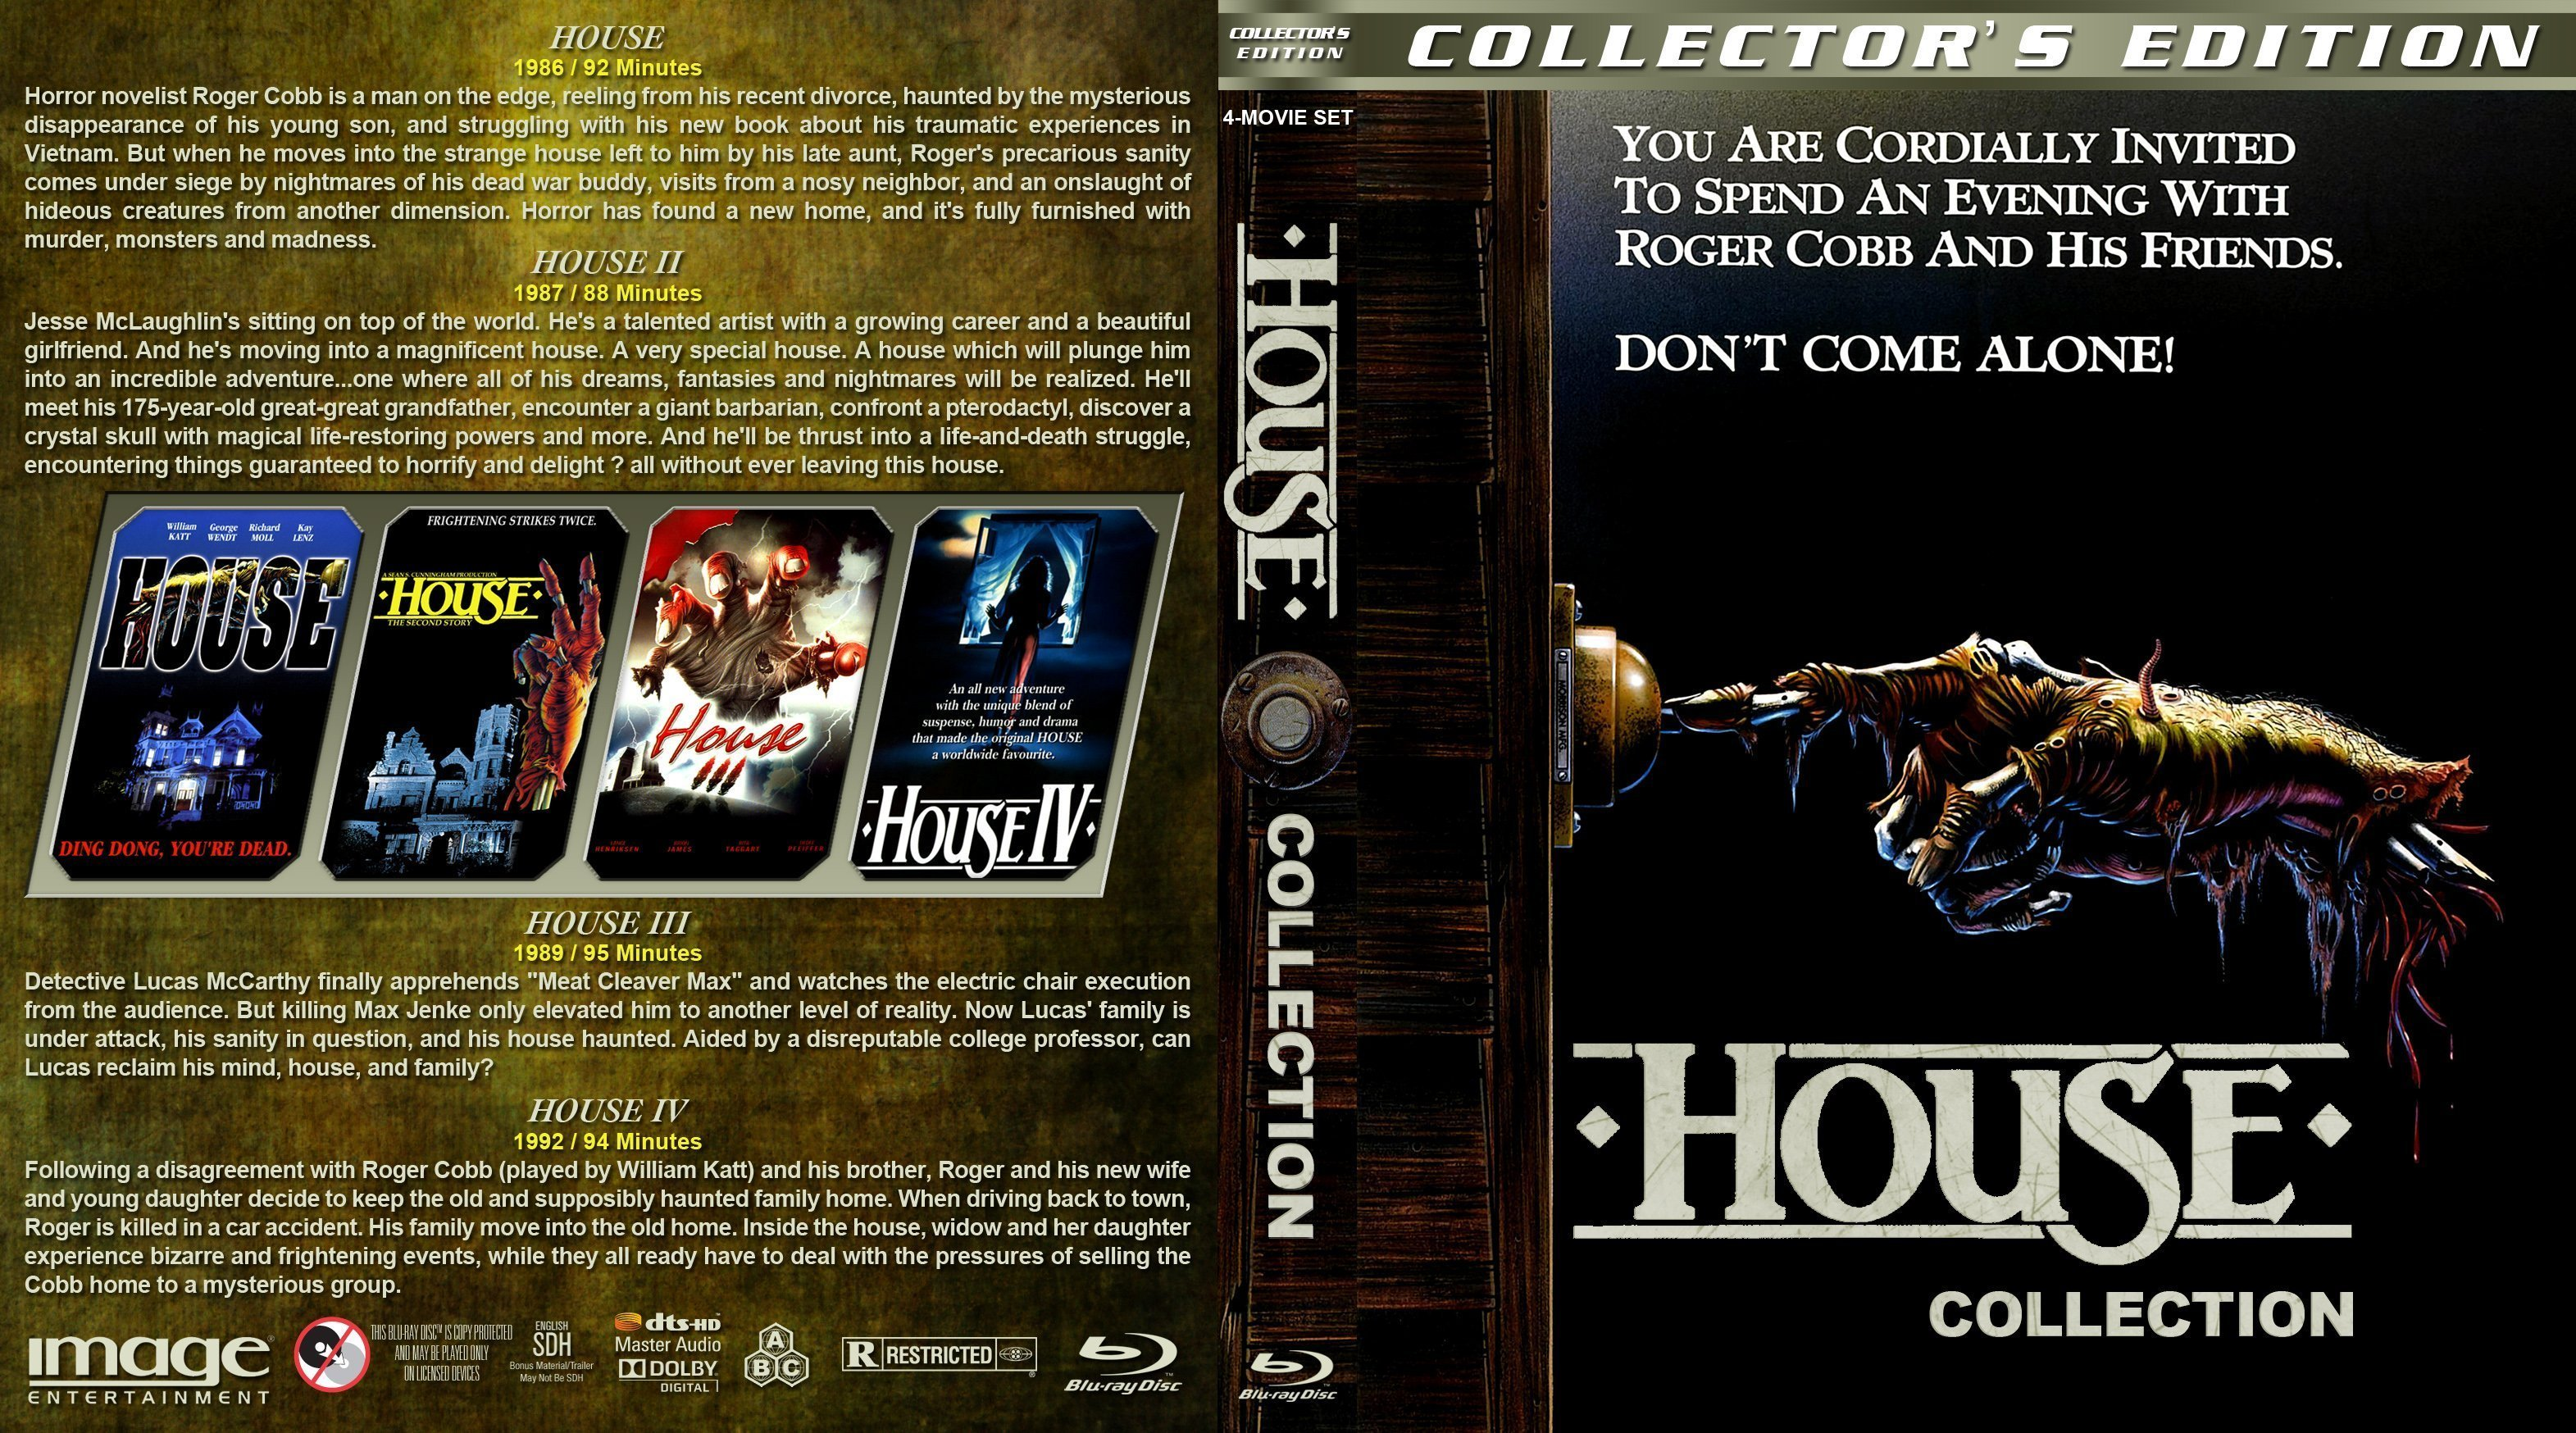 House collection 1986 1992 r1 custom blu ray cover dvd for House music 1986